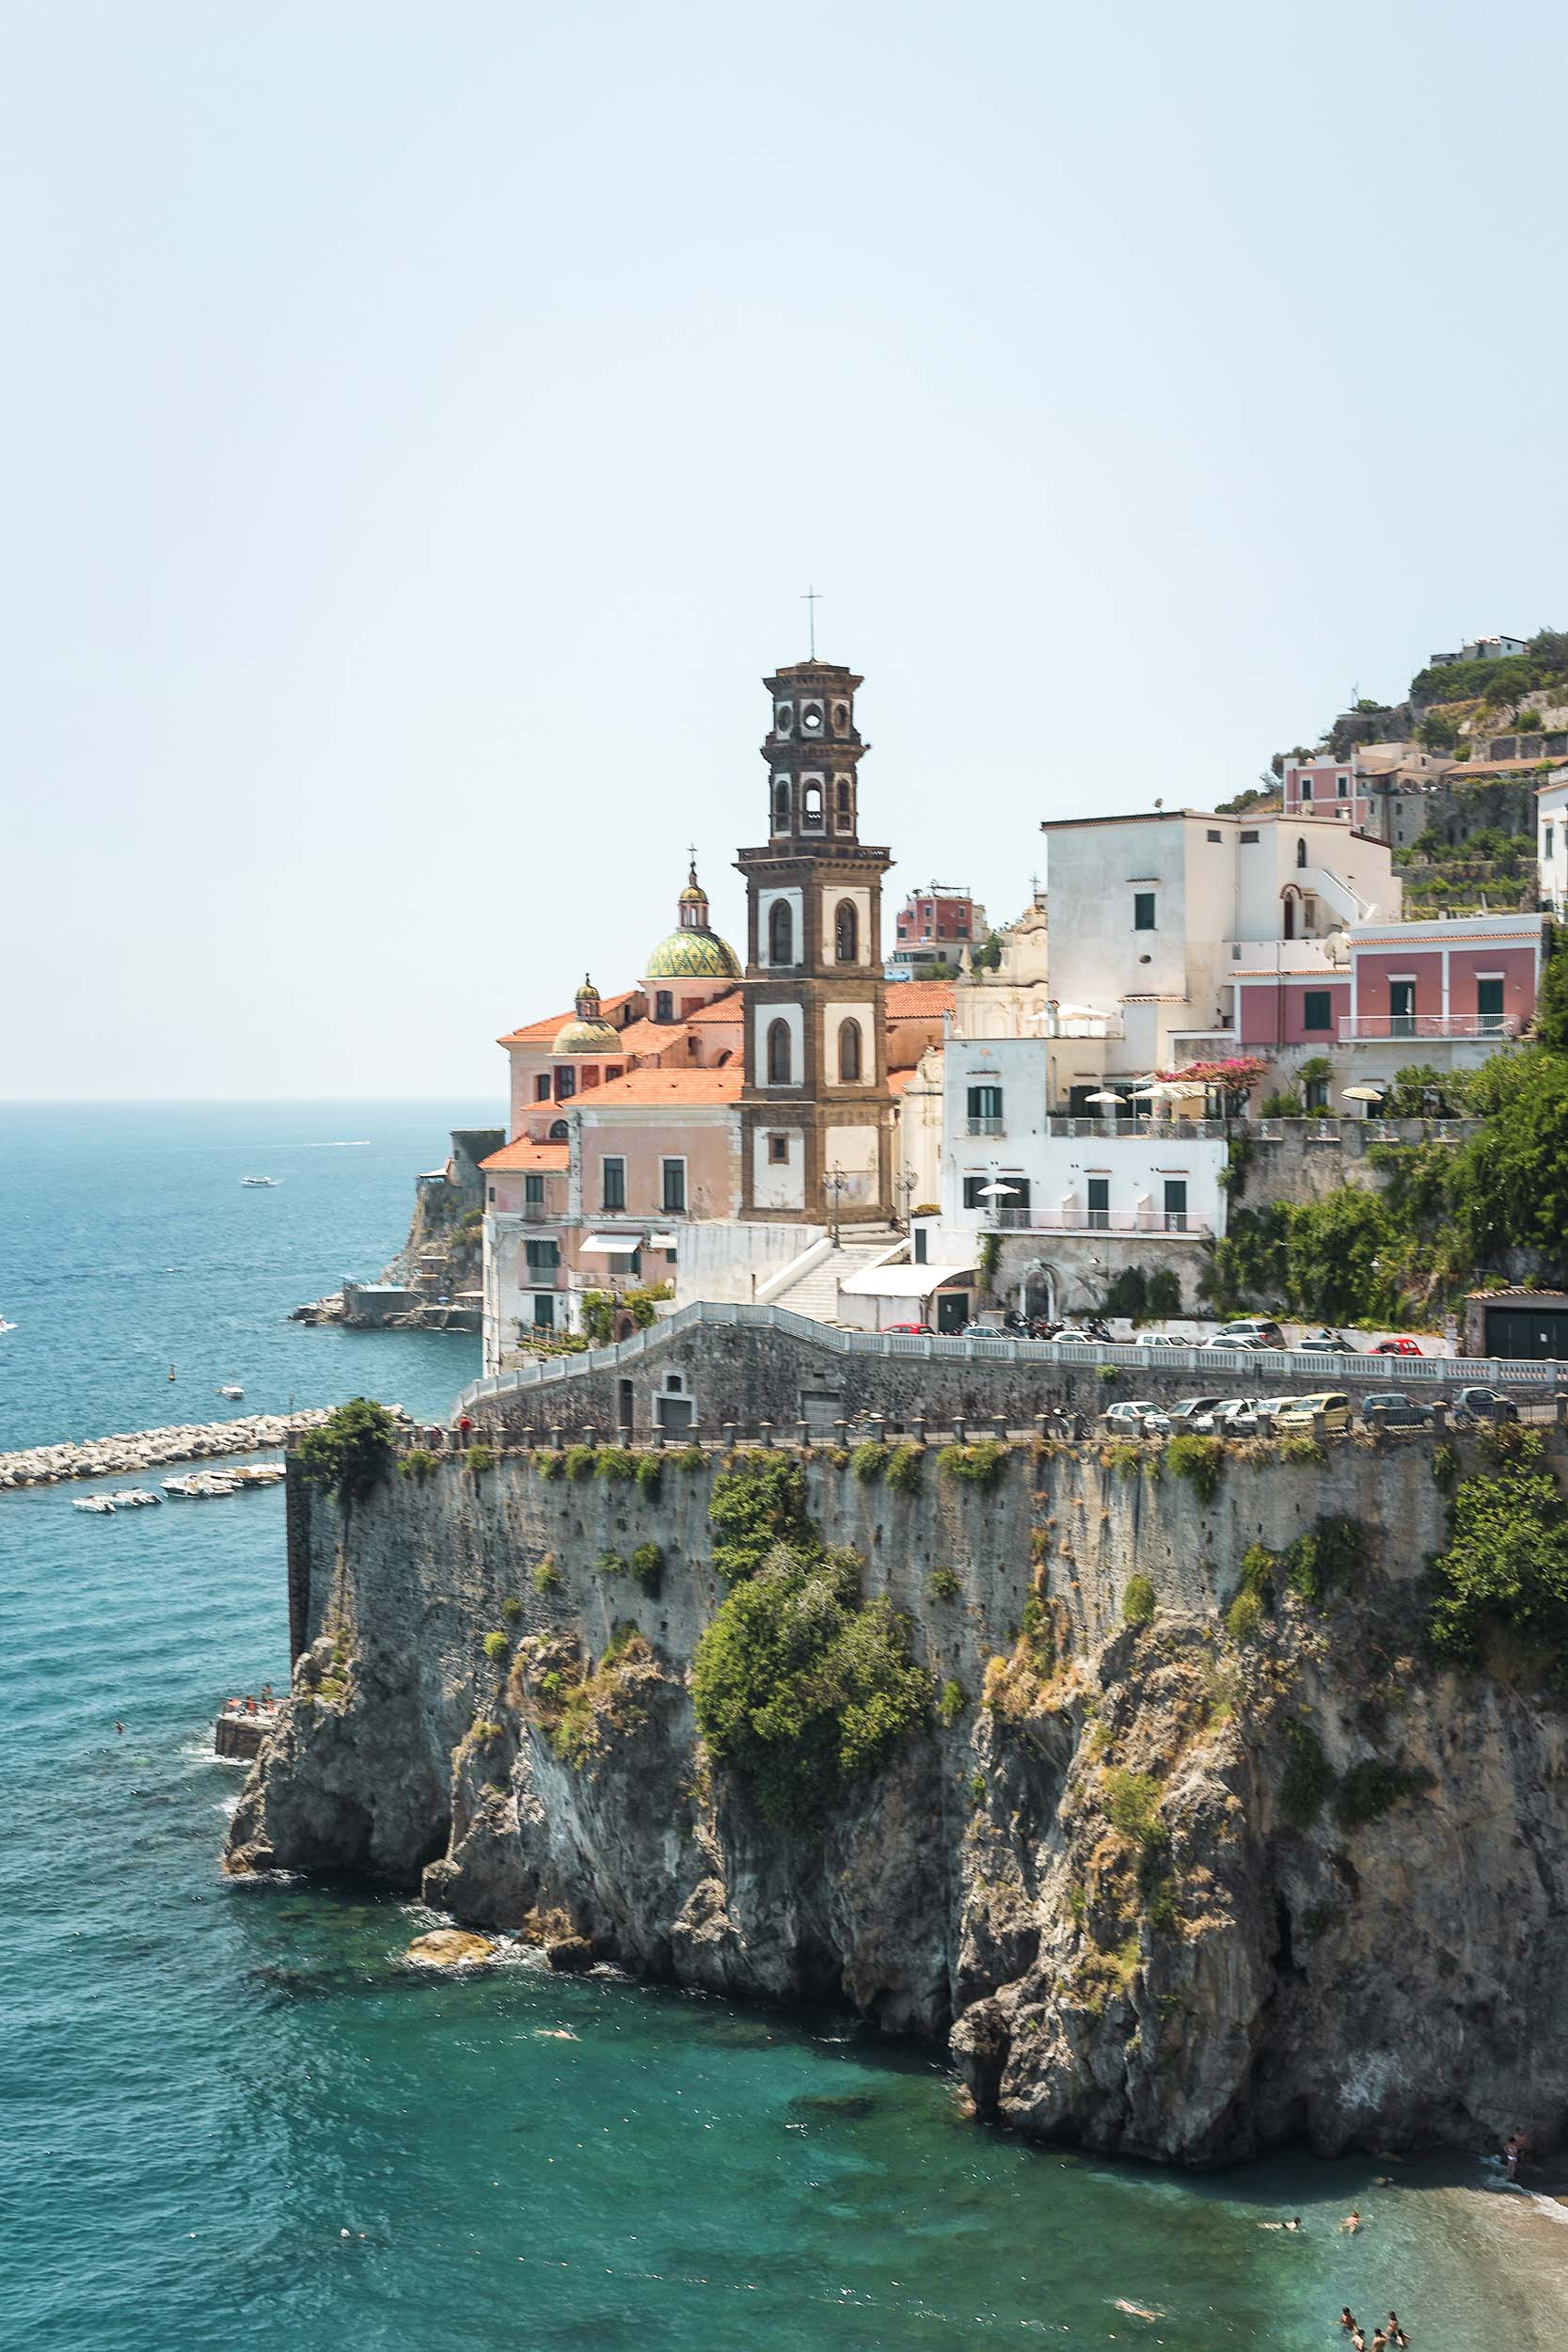 What to do in Positano: Explore each town on the coast!